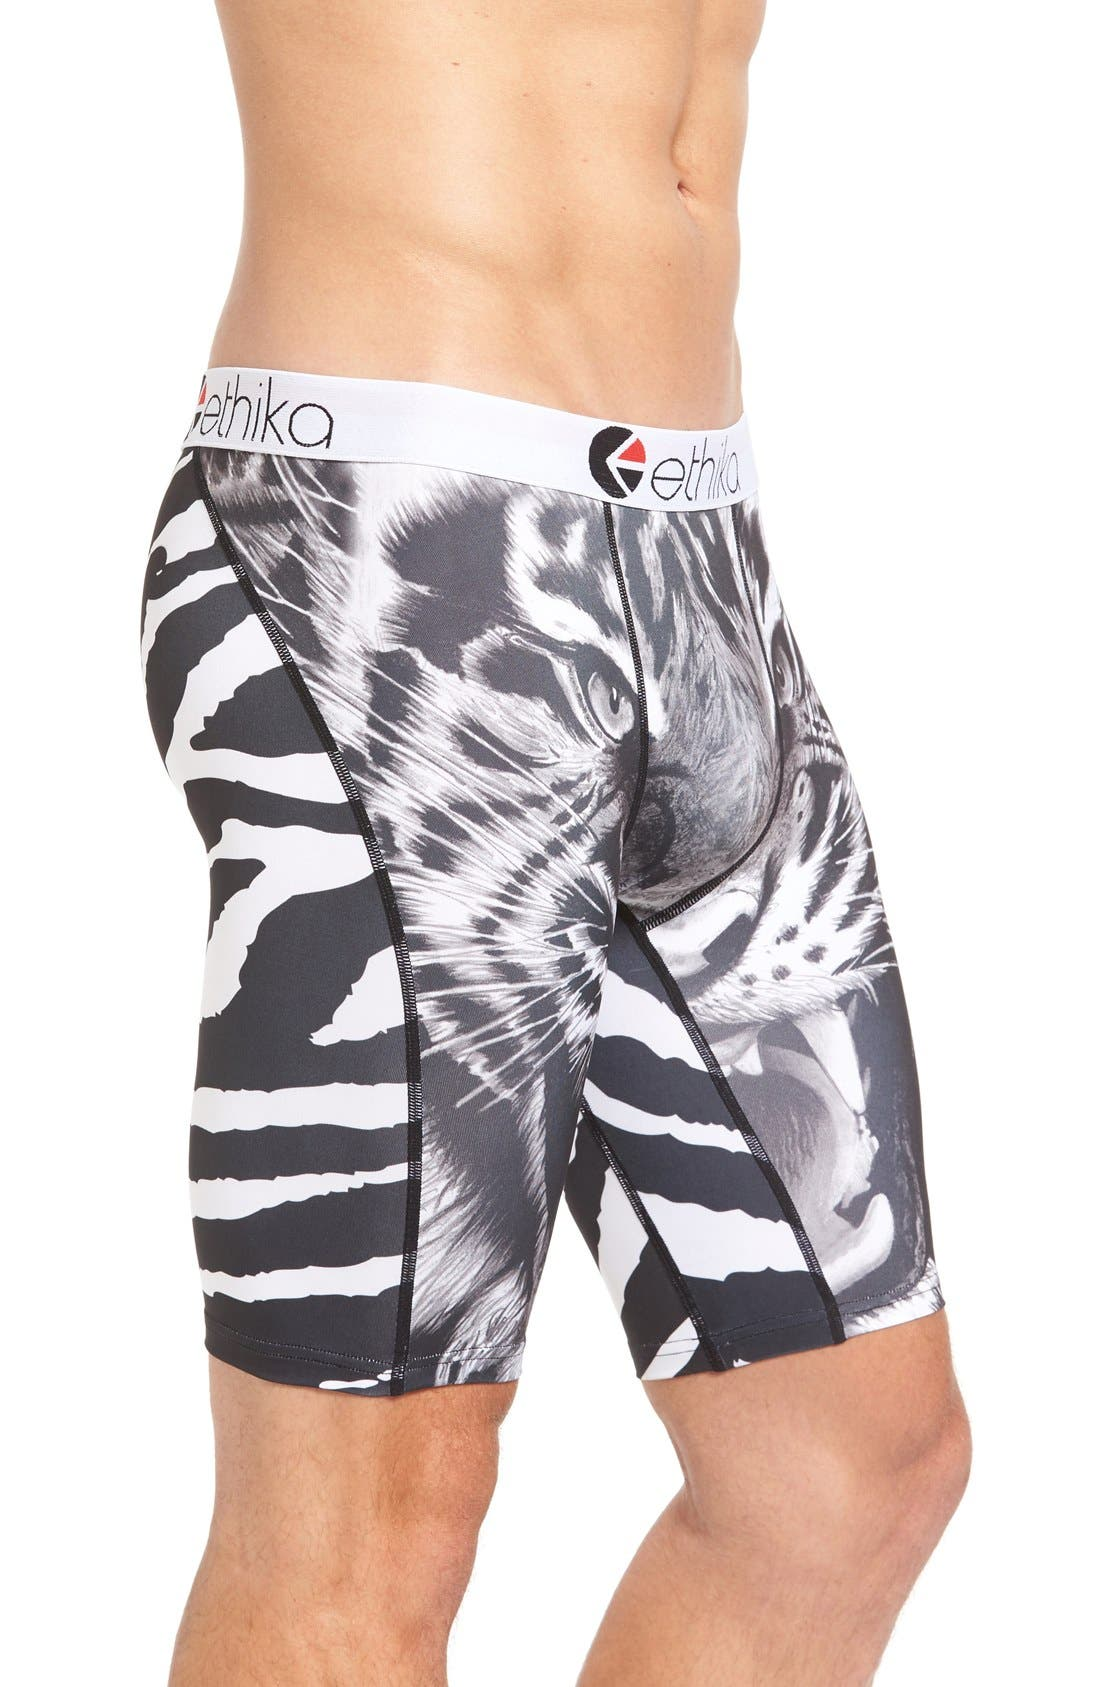 Tiger Face Stretch Boxer Briefs,                             Alternate thumbnail 3, color,                             002